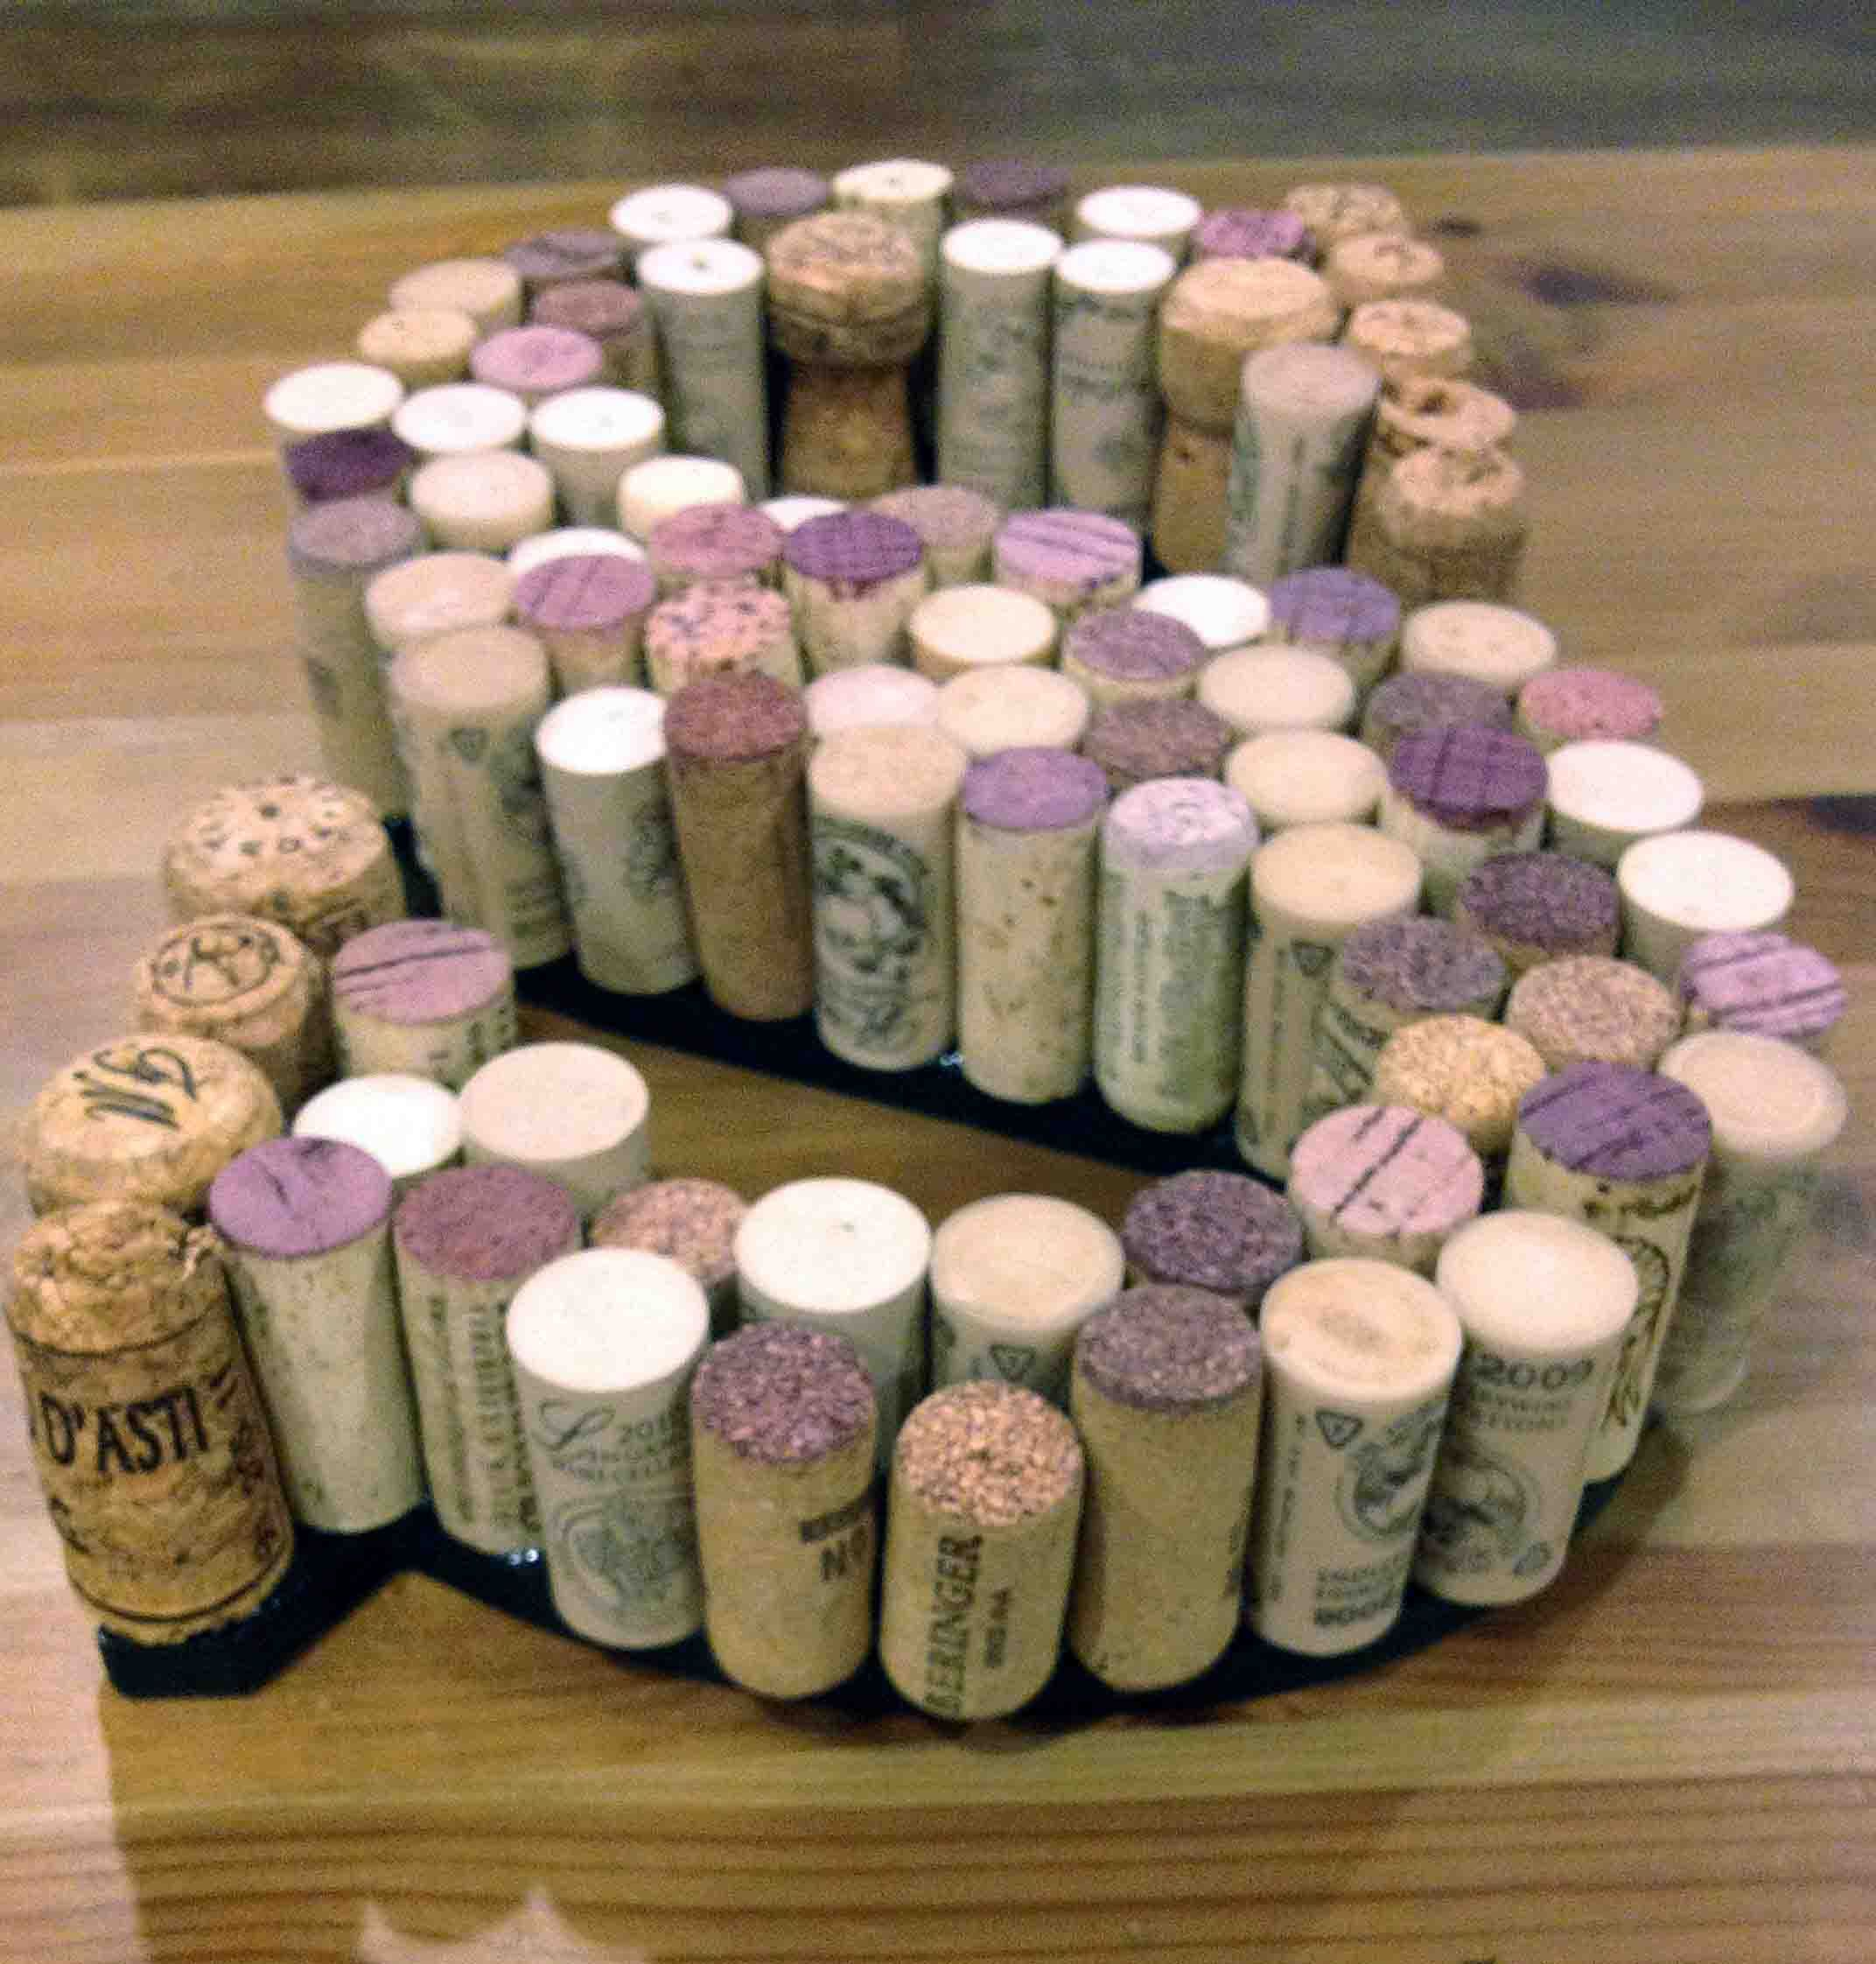 hot glue corks to a large scale wooden letter, try \